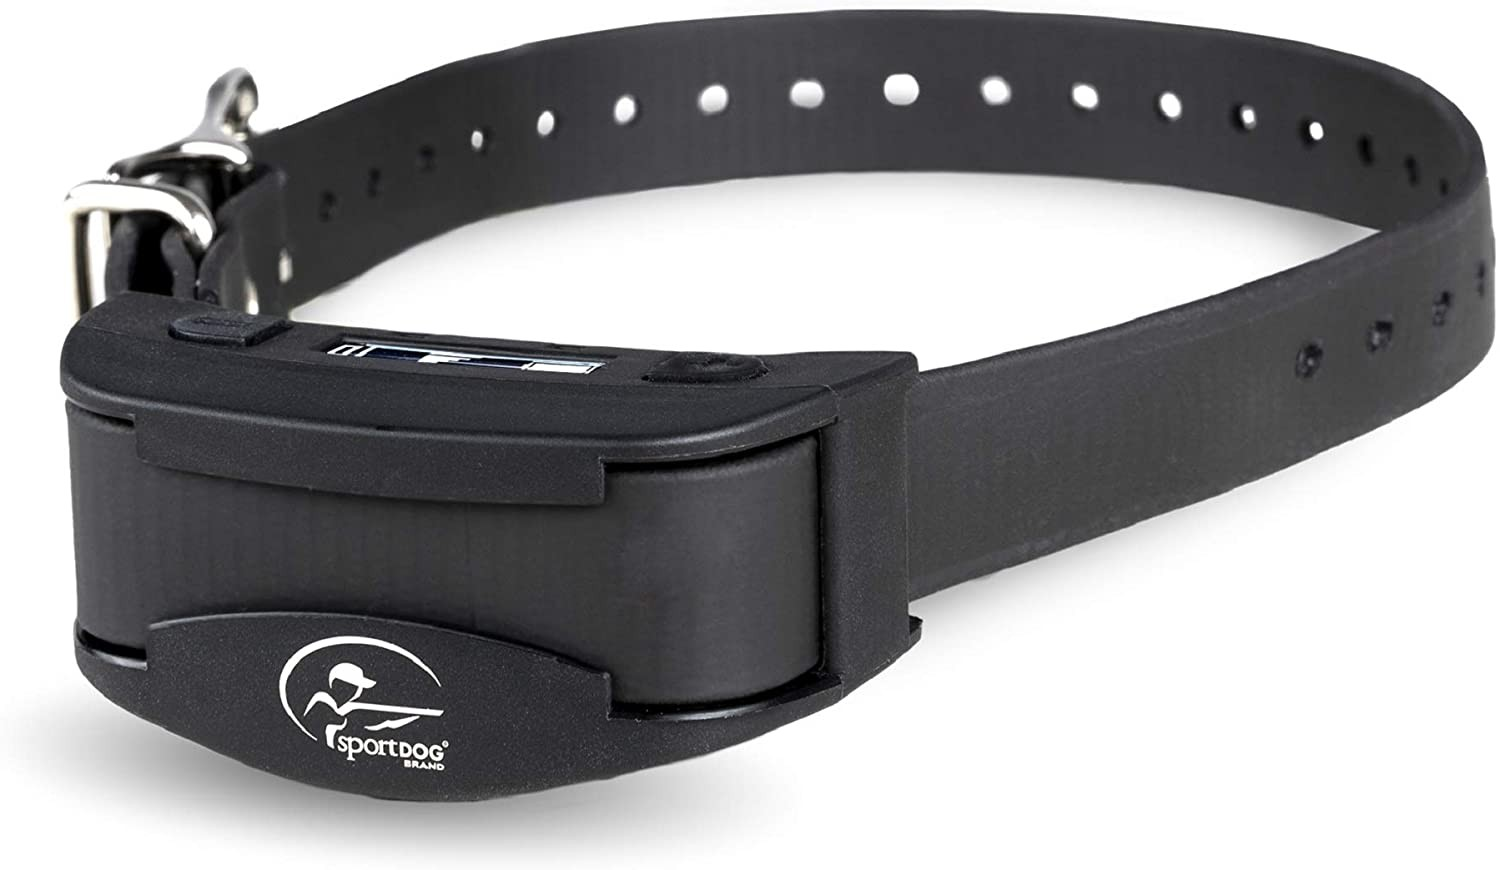 Shock collars like this can cause extreme stress, anxiety depression and aggression.